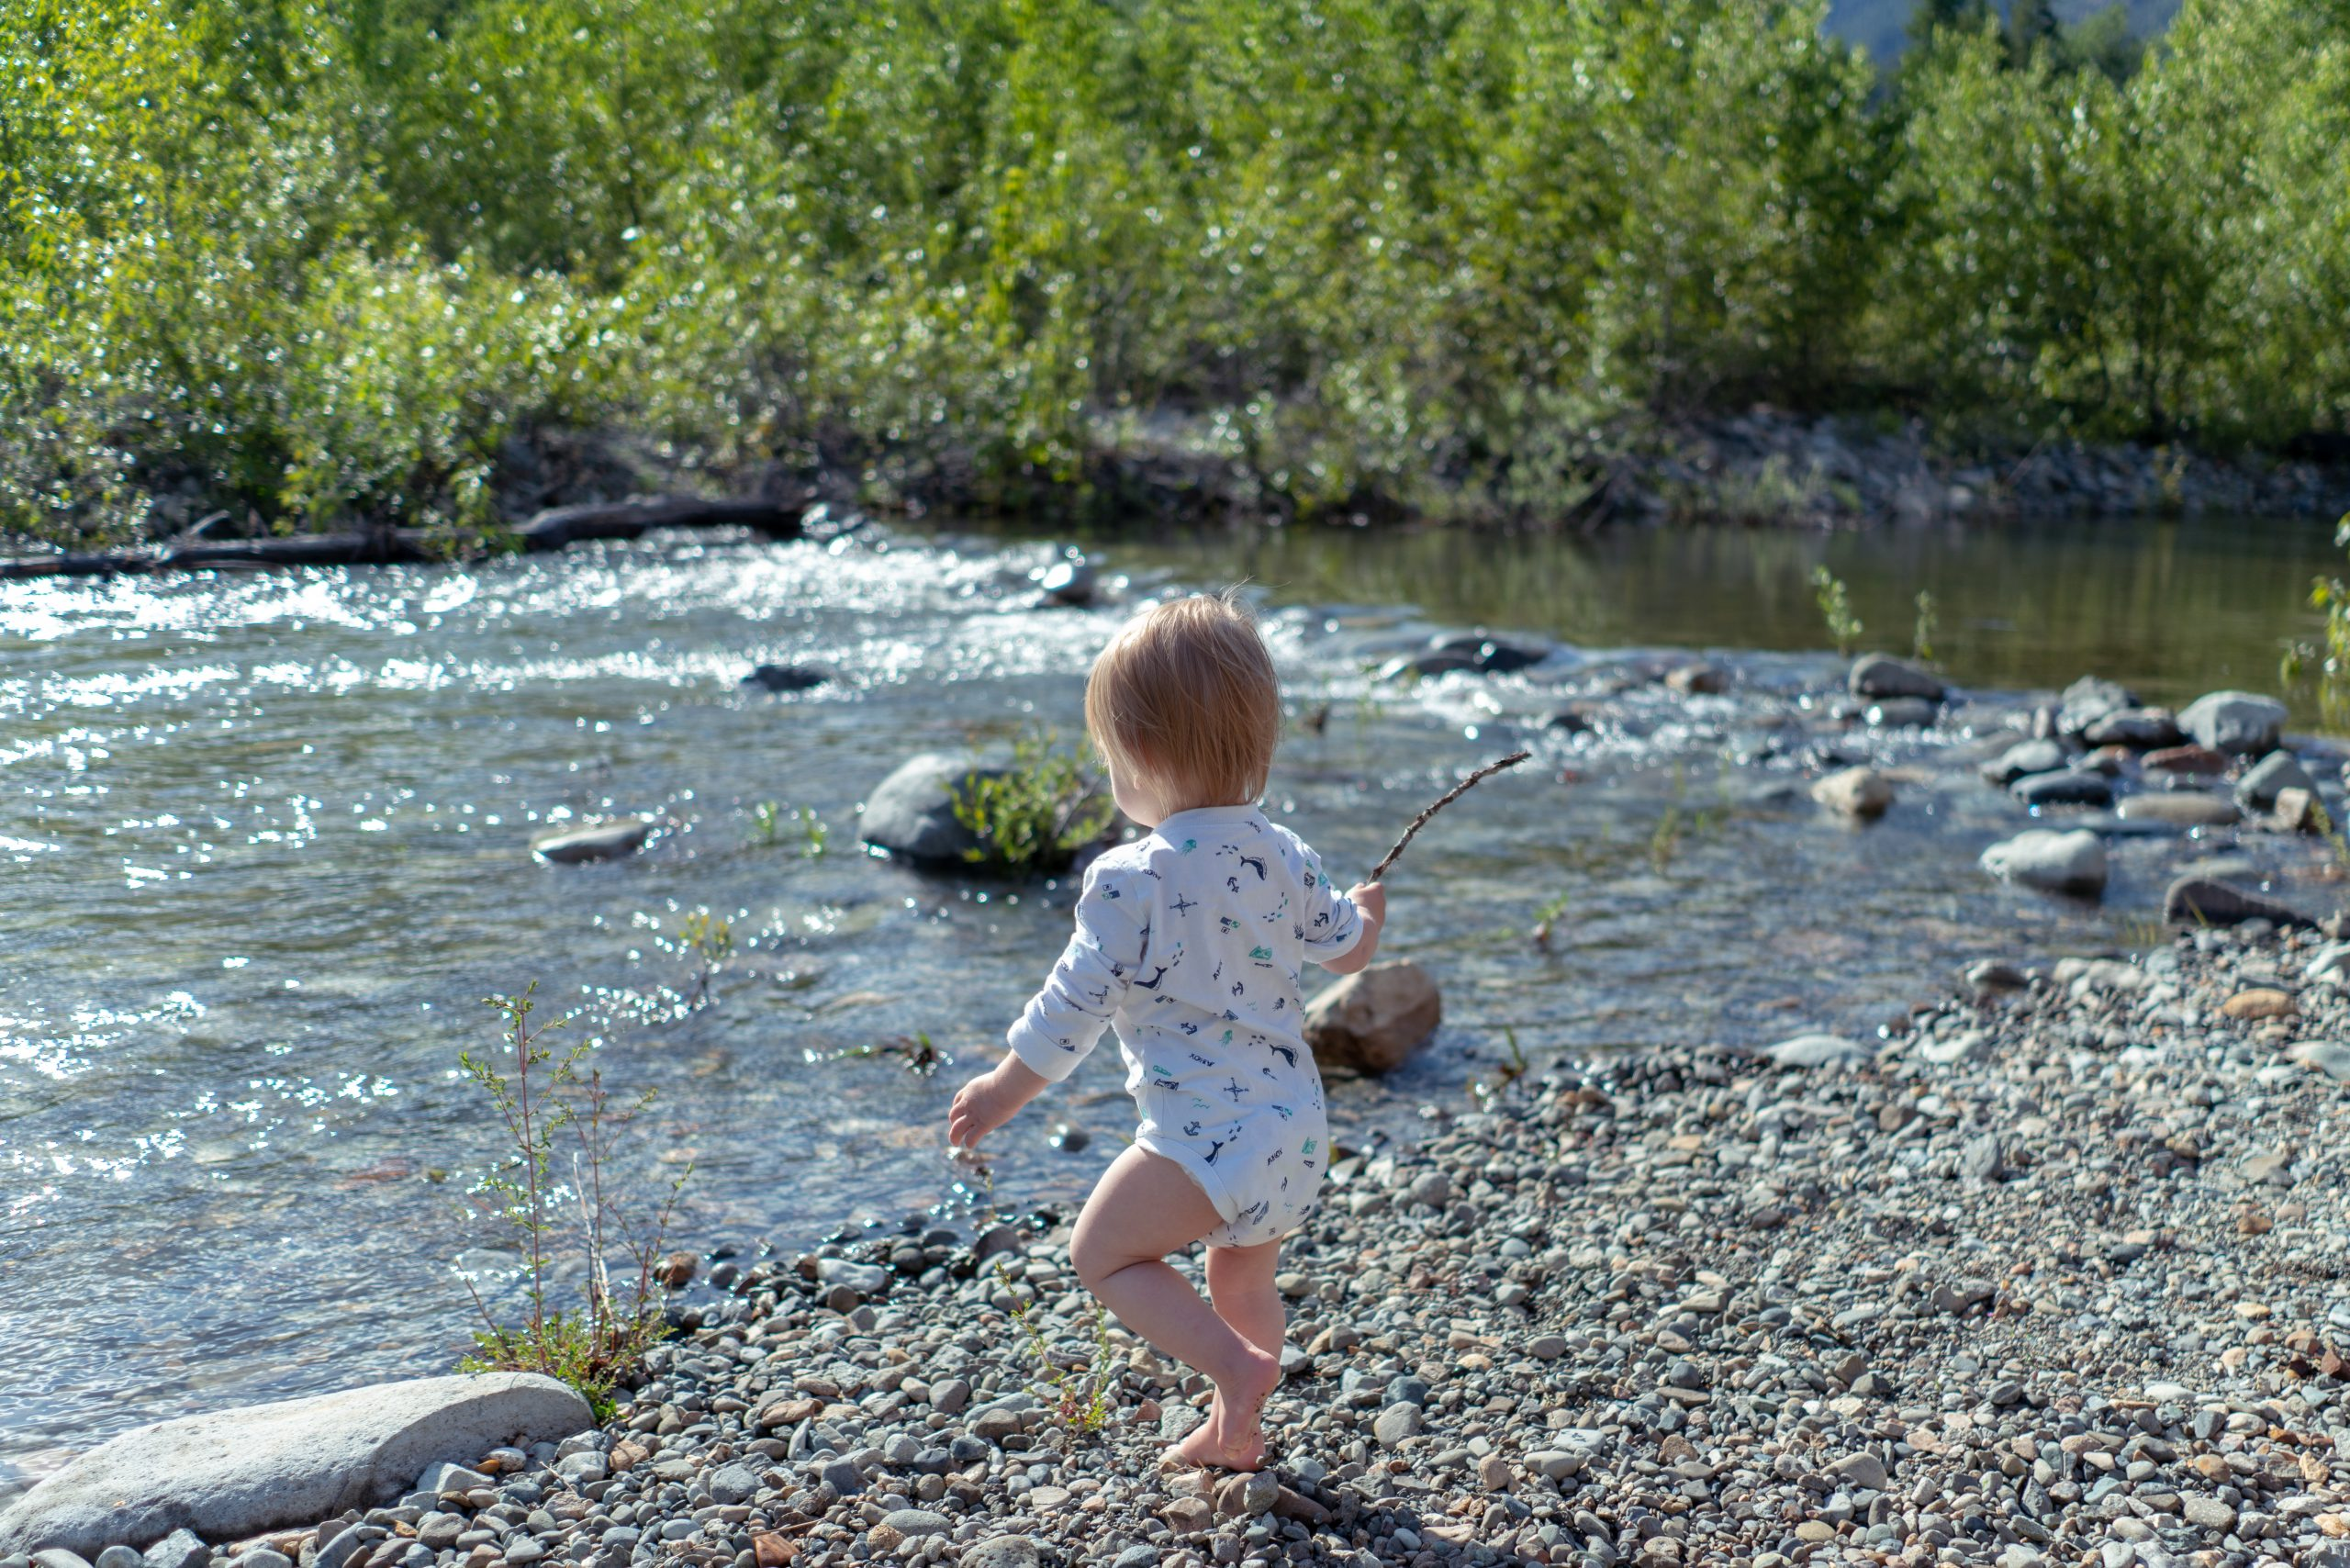 Toddler playing with a stick at the edge of a river